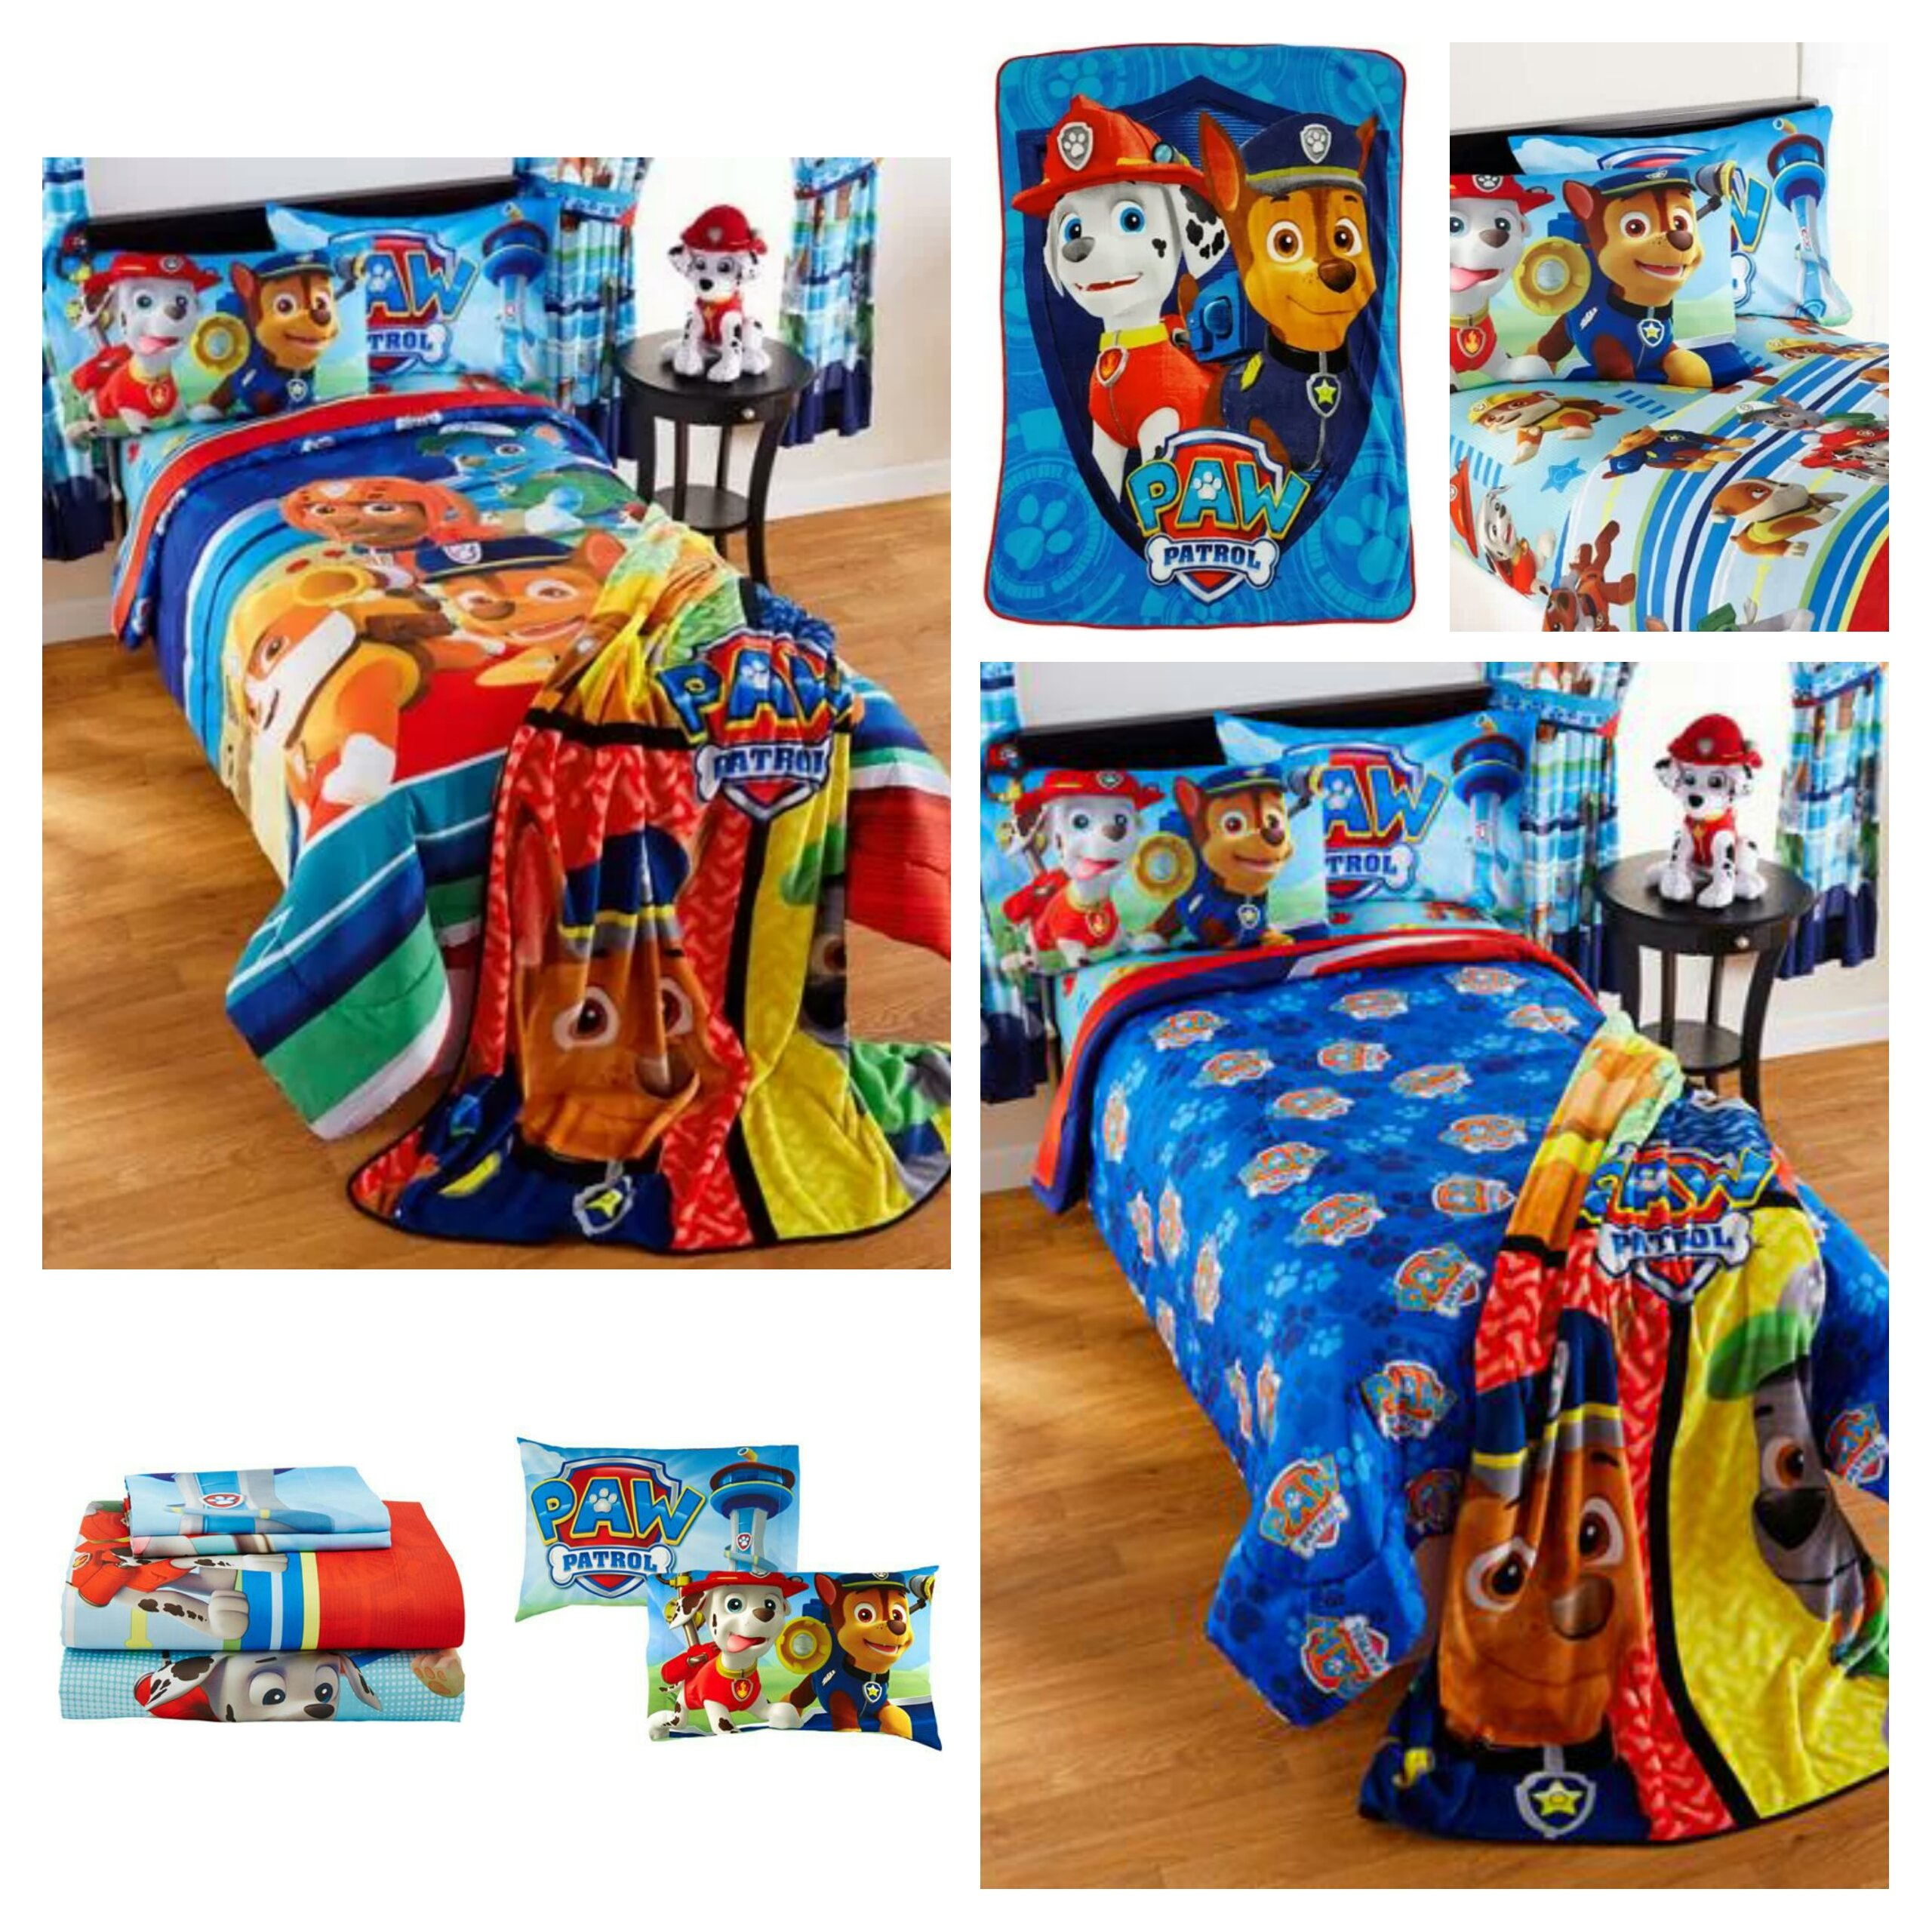 Paw Patrol Kids 5 Piece Bedding Set with Reversible Comforter, Sheets, Pillow Case, and Nap Blanket by Paw Patrol